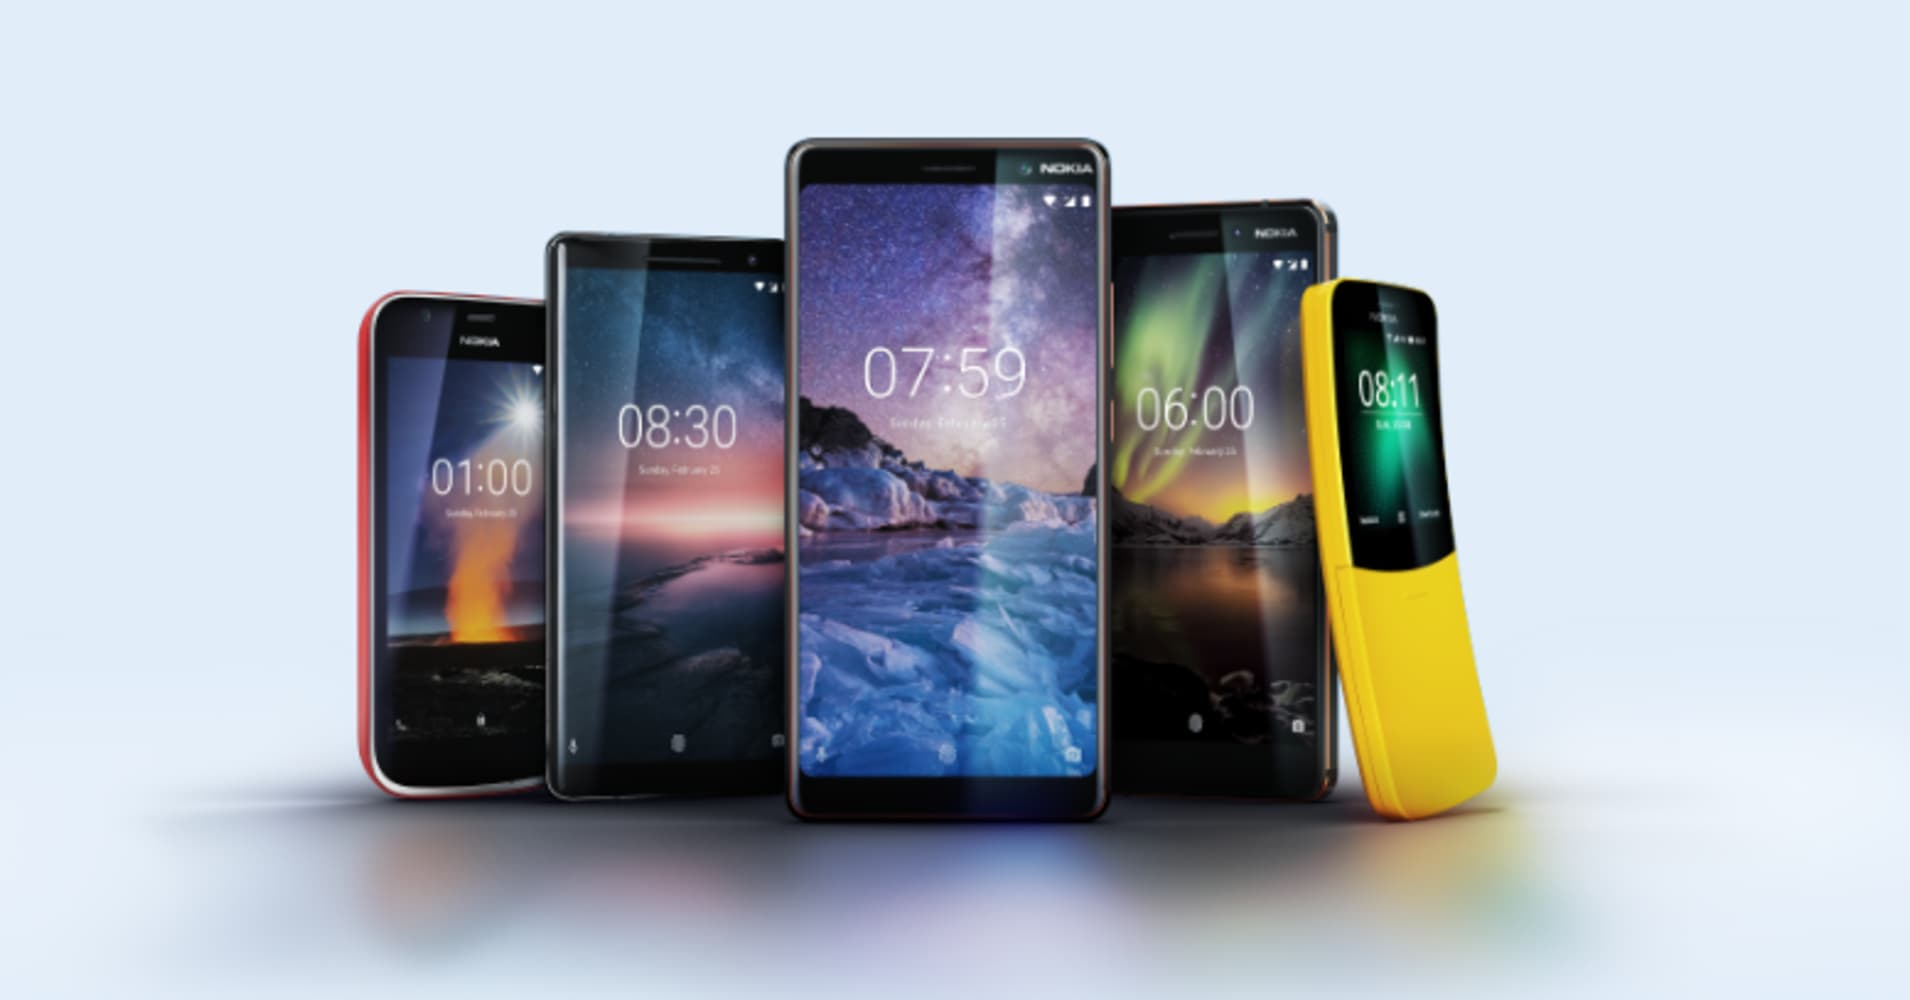 Nokia 8 sirocco launches with near 1000 price tag to battle iphone x biocorpaavc Choice Image